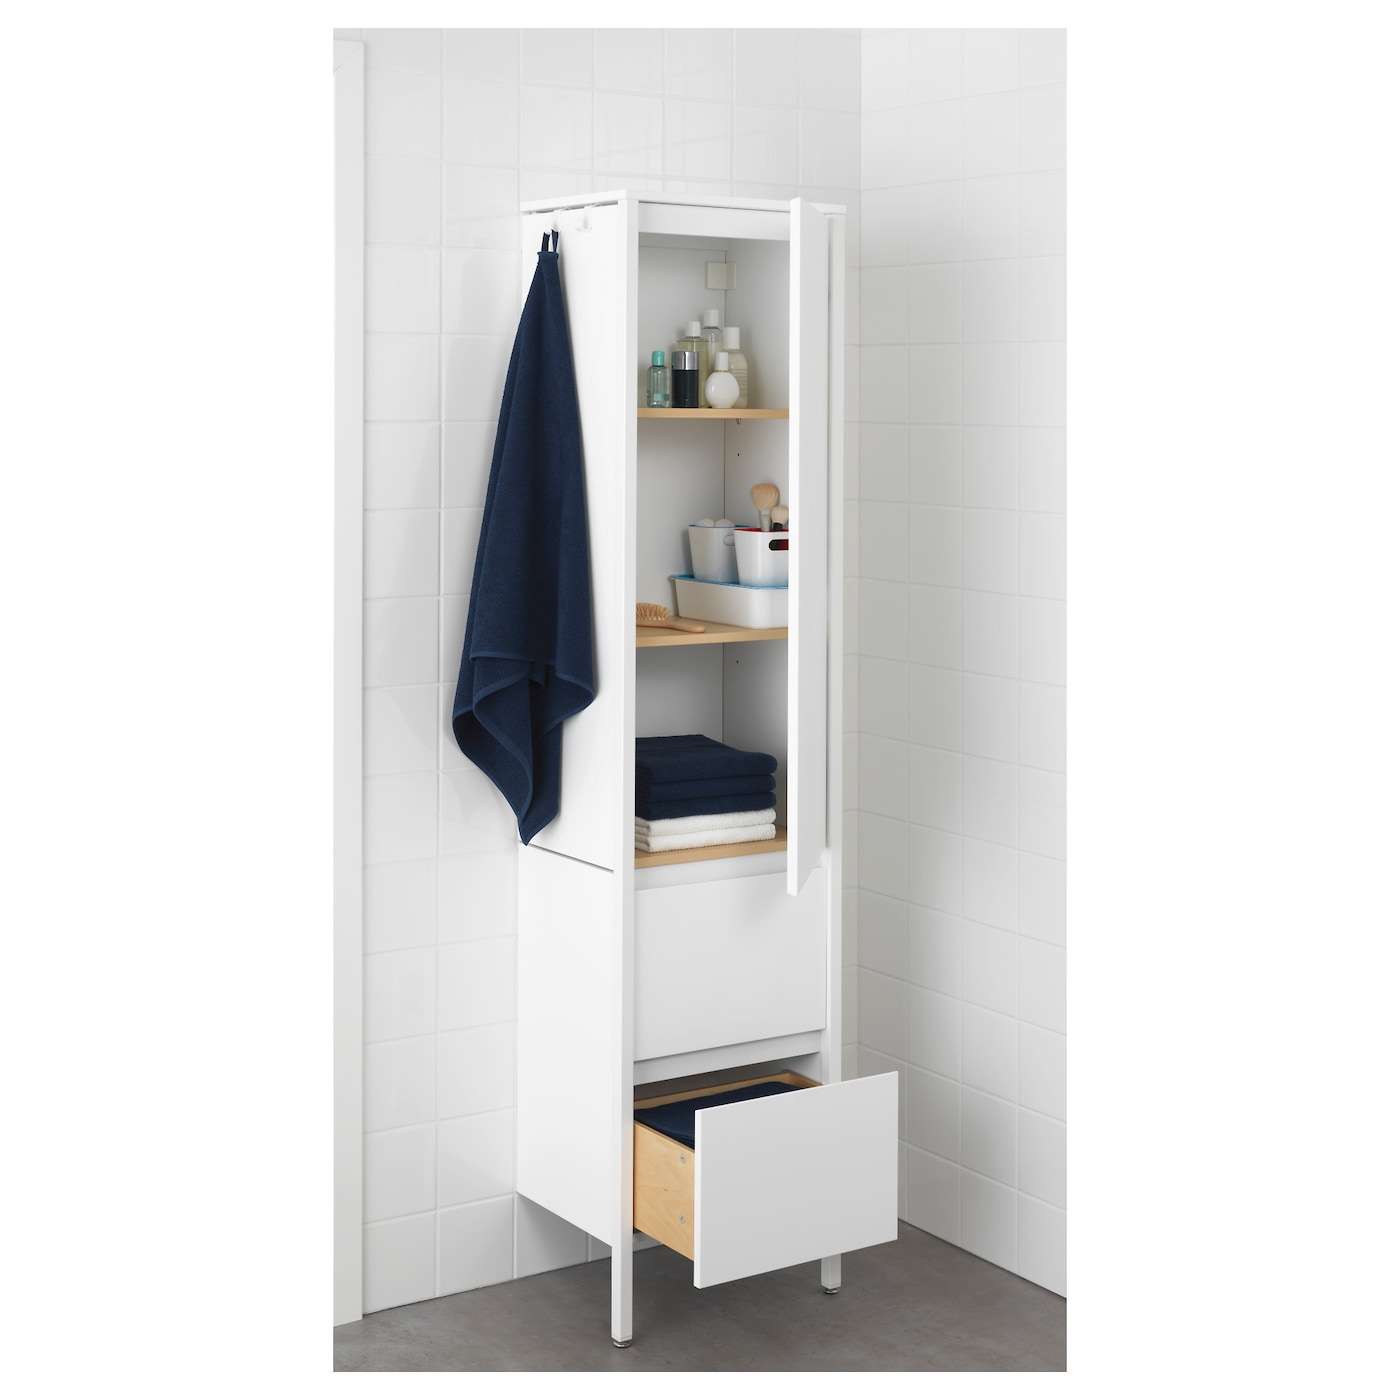 IKEA YDDINGEN high cabinet Hooks for towels or other things that you want to have within easy reach.